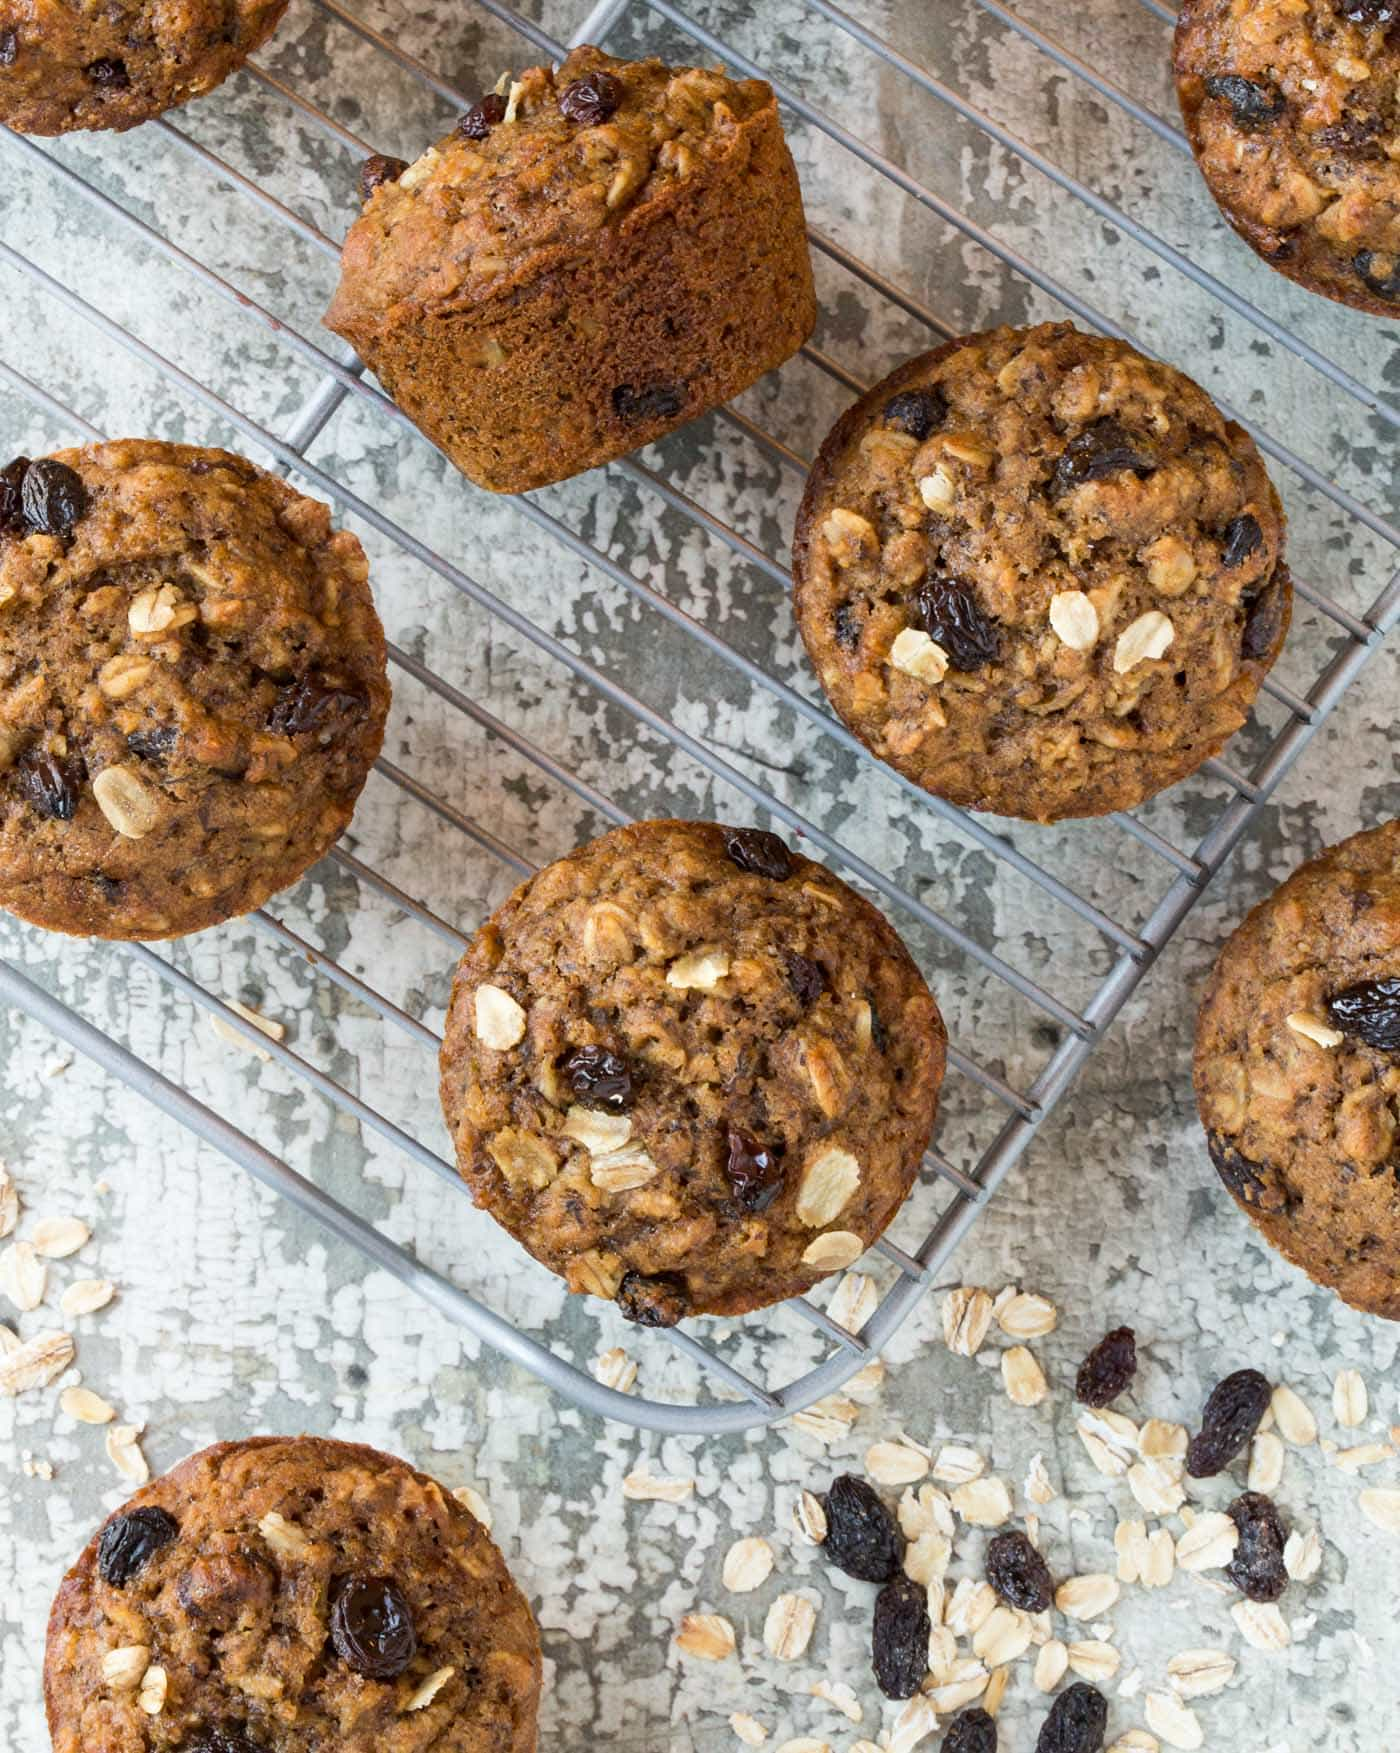 These Healthy Oatmeal Raisin Muffins freeze beautifully - perfect for last minute brunch guests!